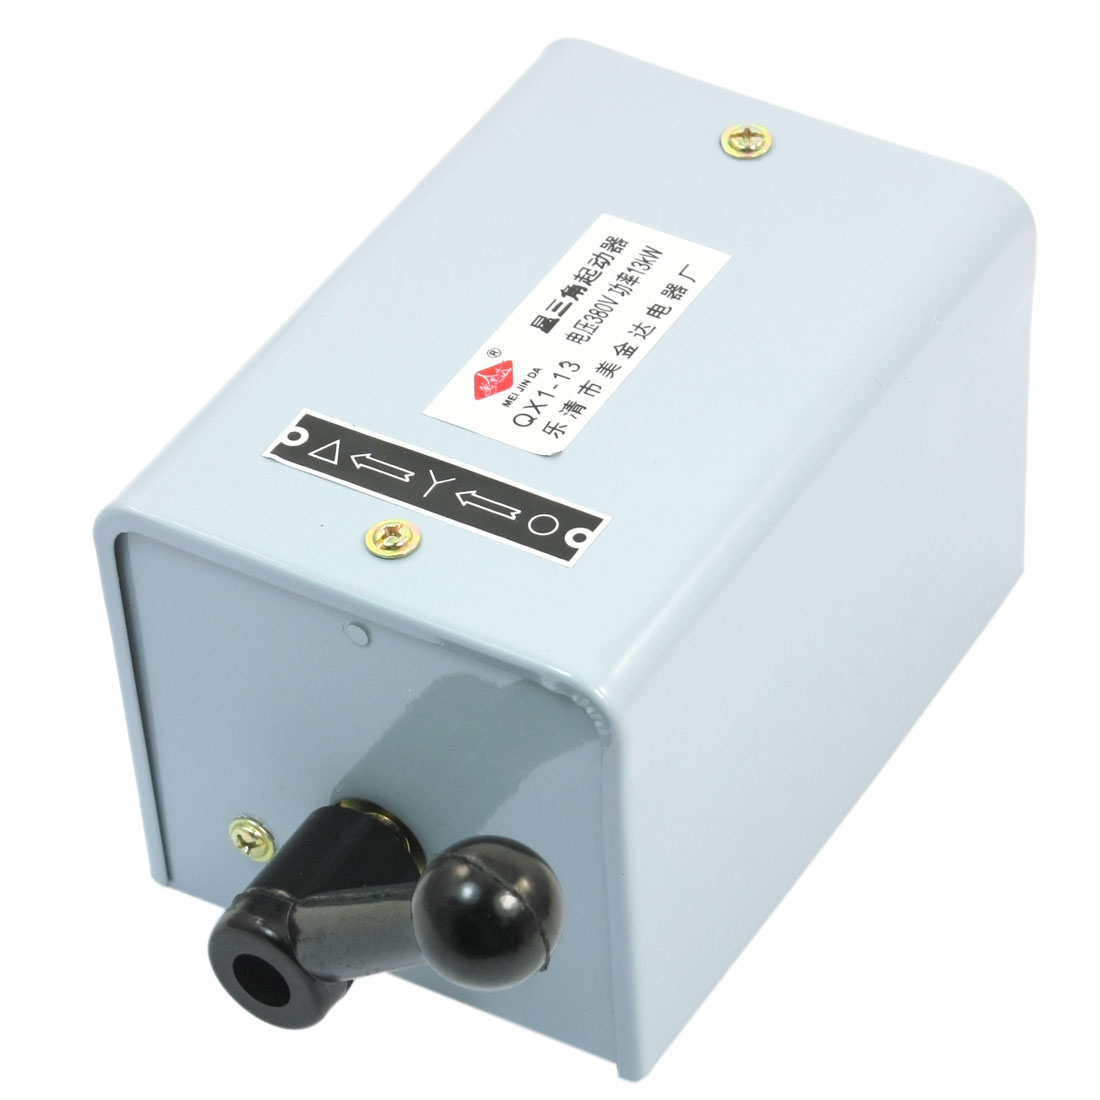 QX1-13 380V 28A 13kW 2 Position 3 Phase Rotary Knob Enclosed Star Triangle Motor Protection Starter Protector